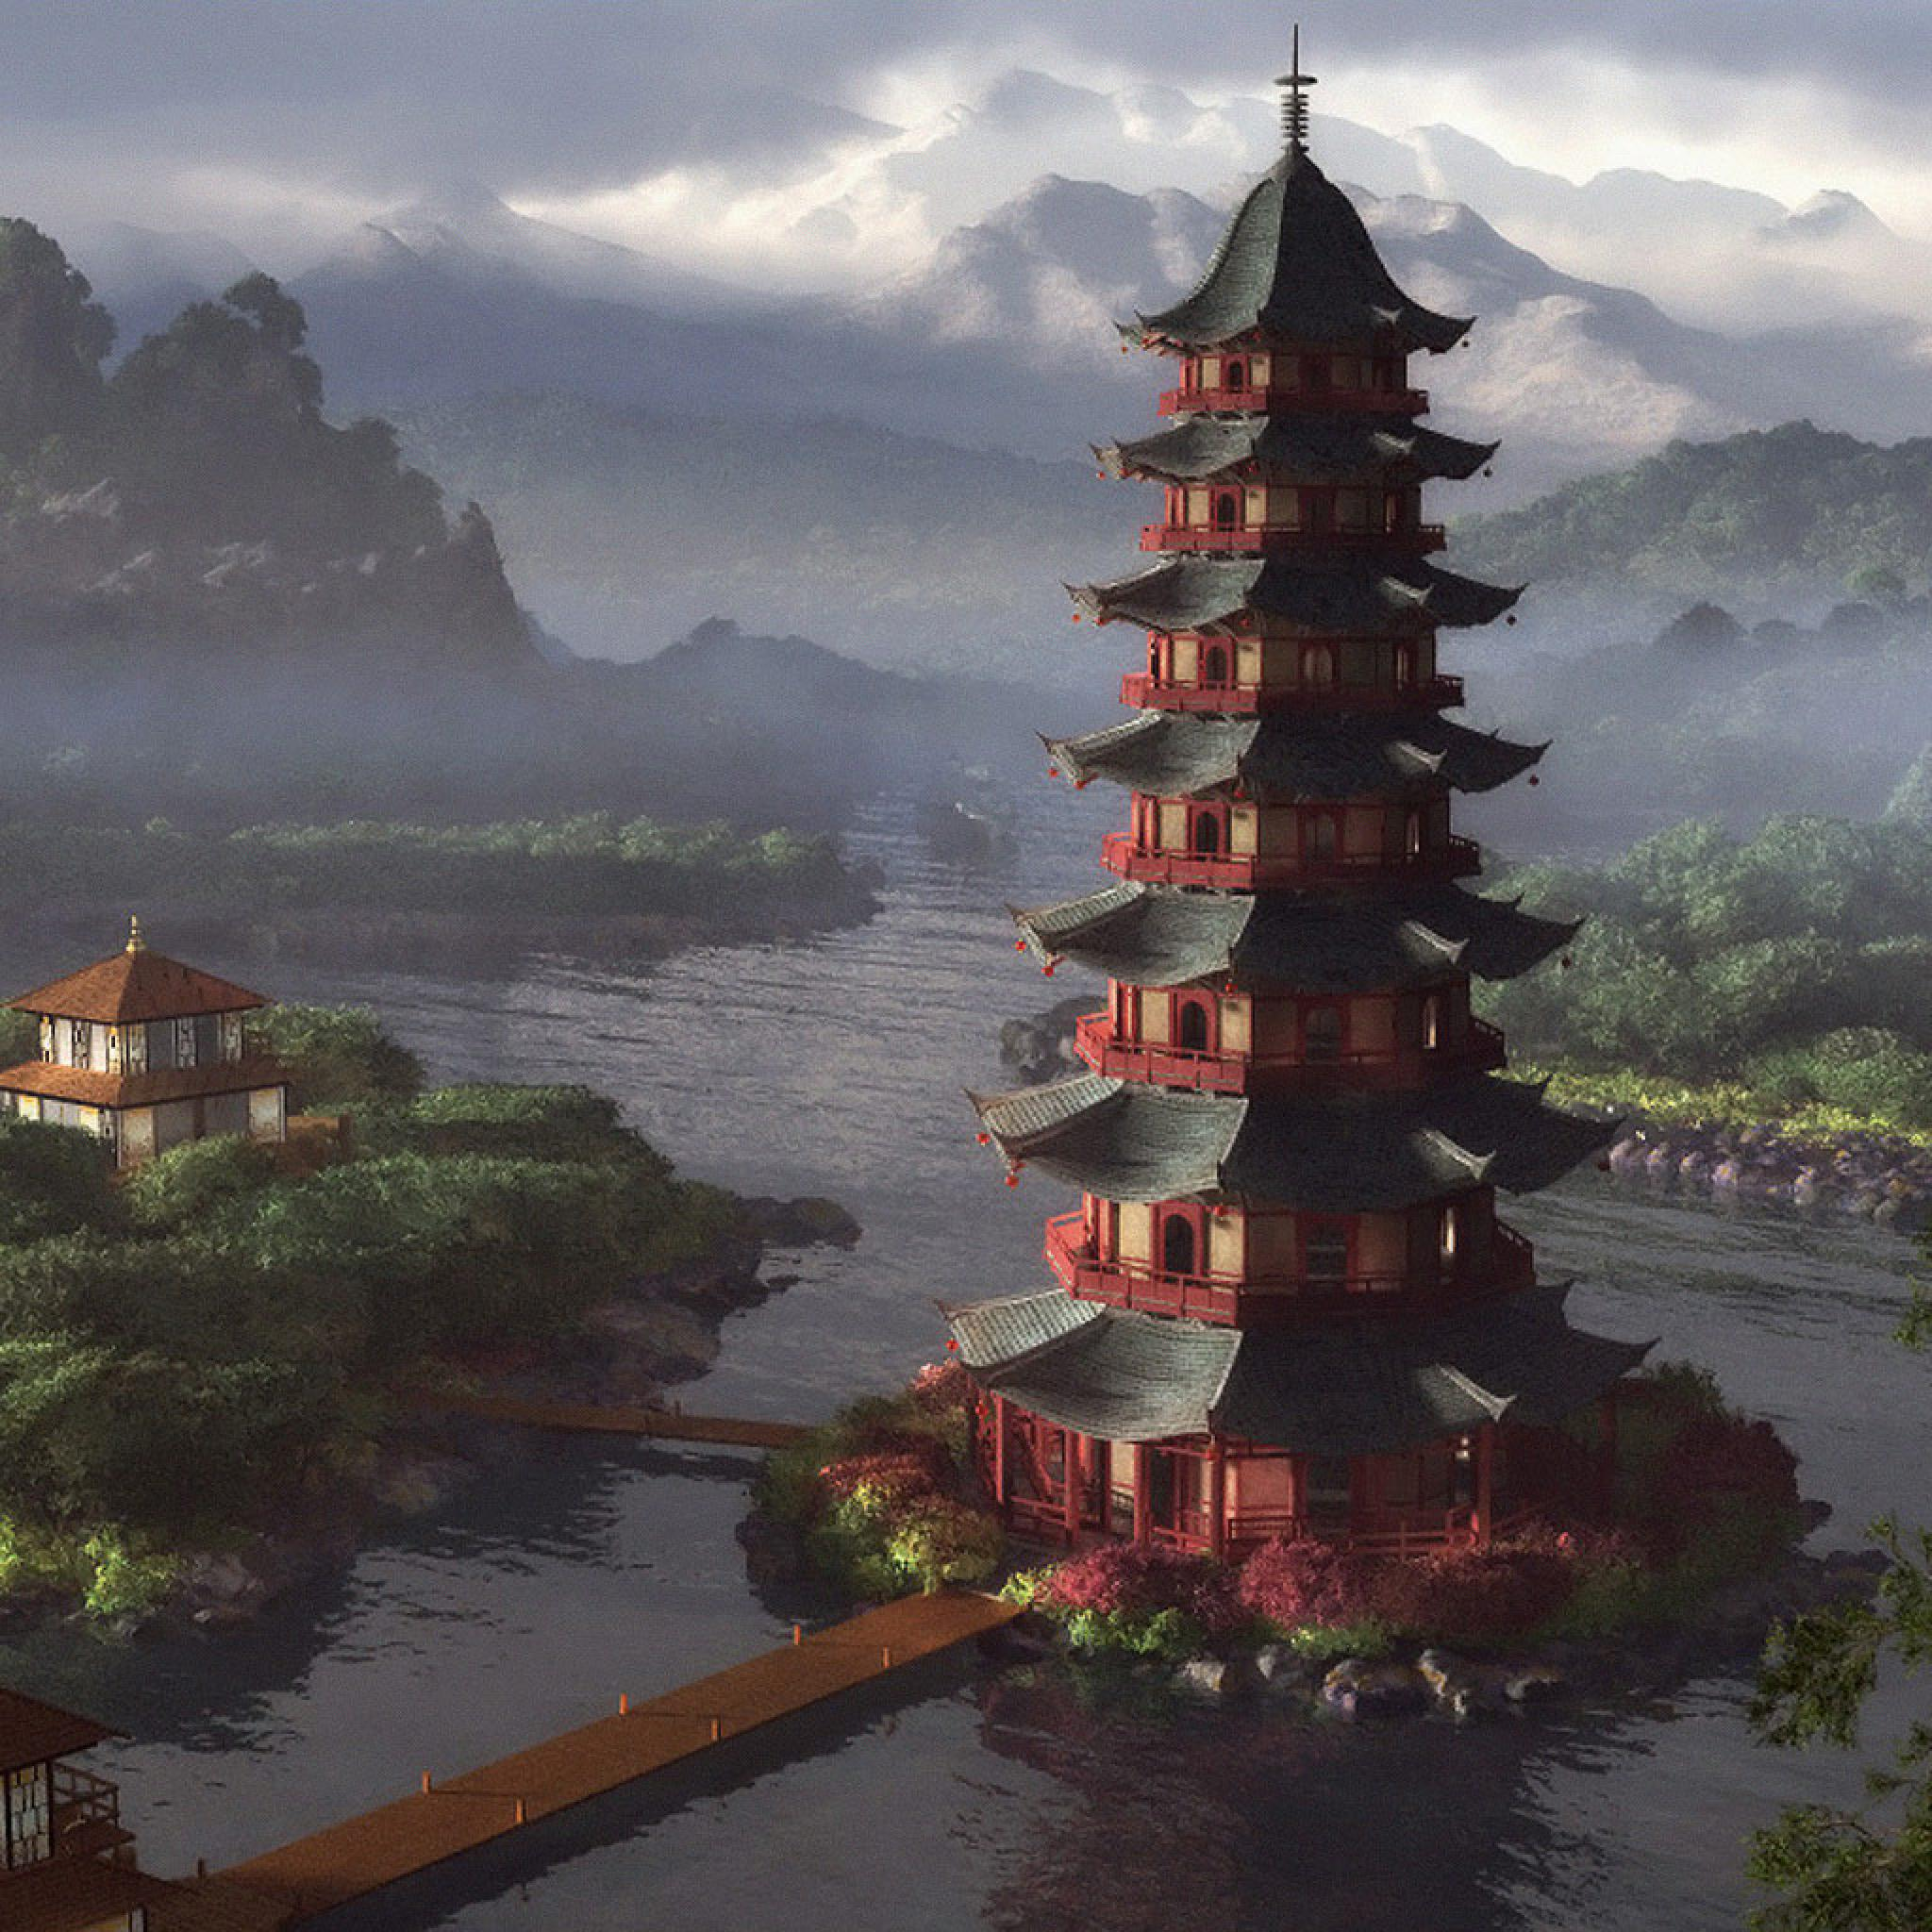 Magic Touch 3d Wallpaper Cg Fantasy Chinese Pagoda Temple Ipad Iphone Hd